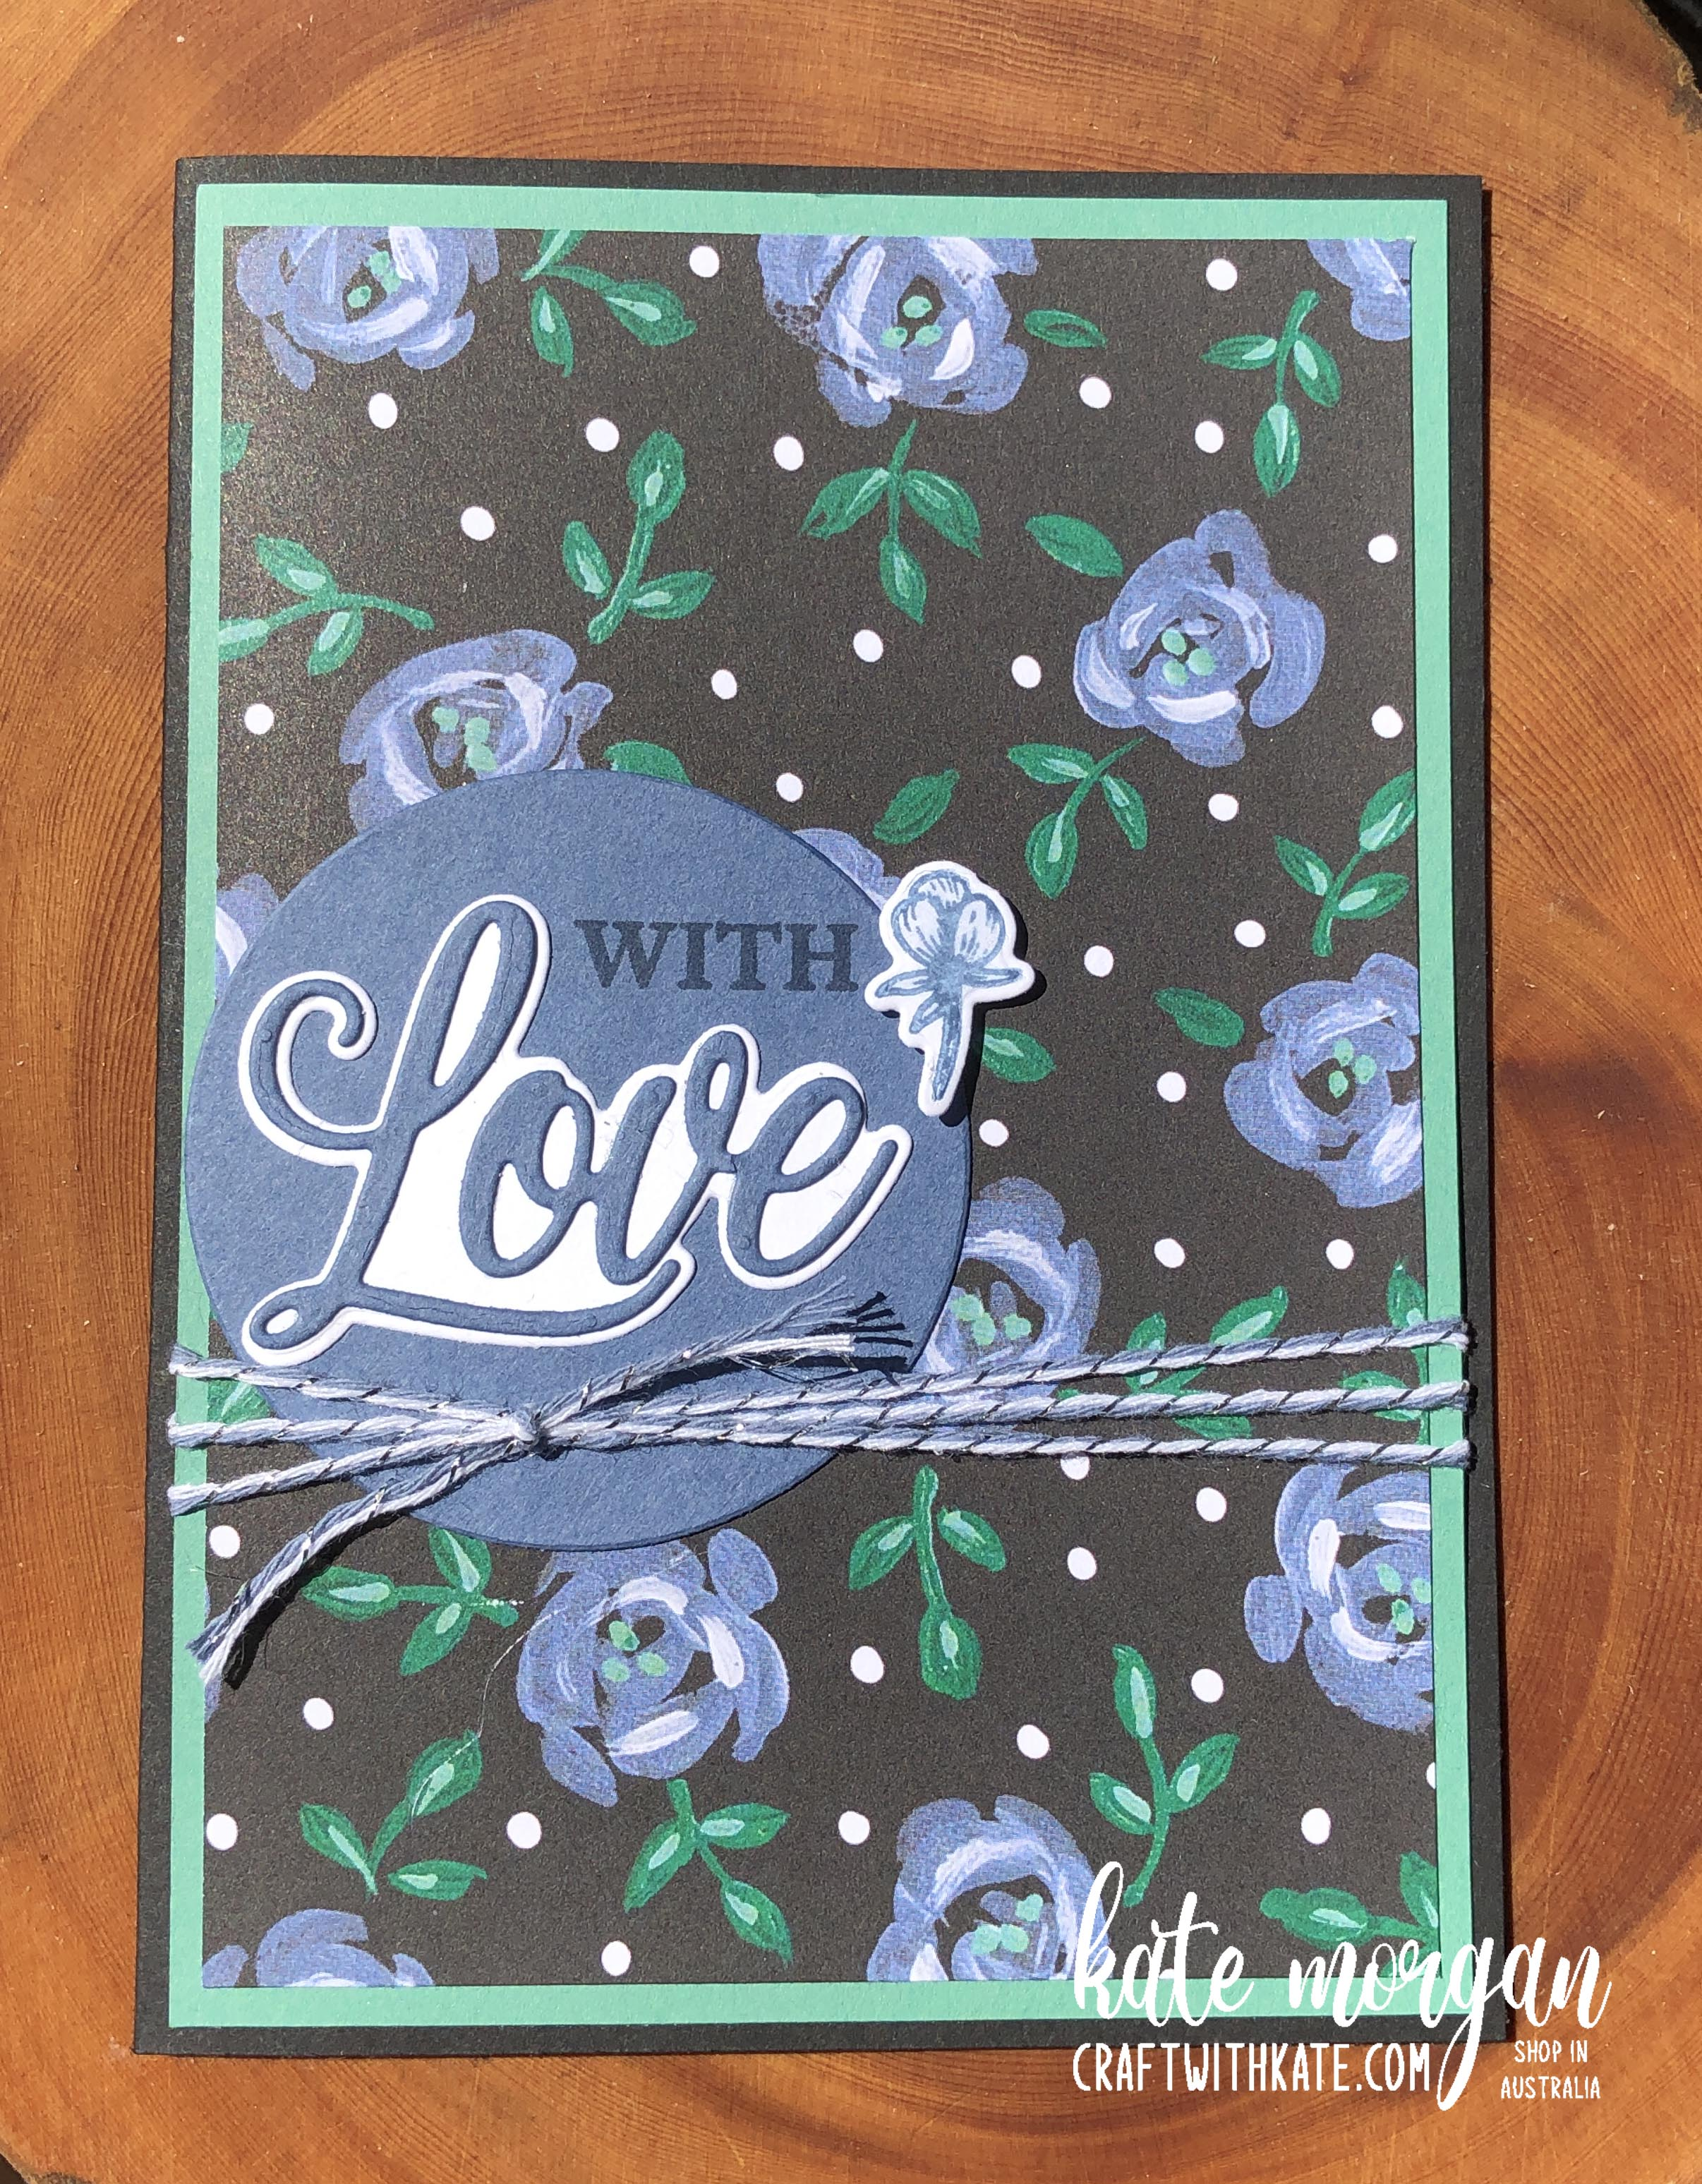 Love You Always and Flower & Field DSP by Kate Morgan Stampin Up! Australia 2021